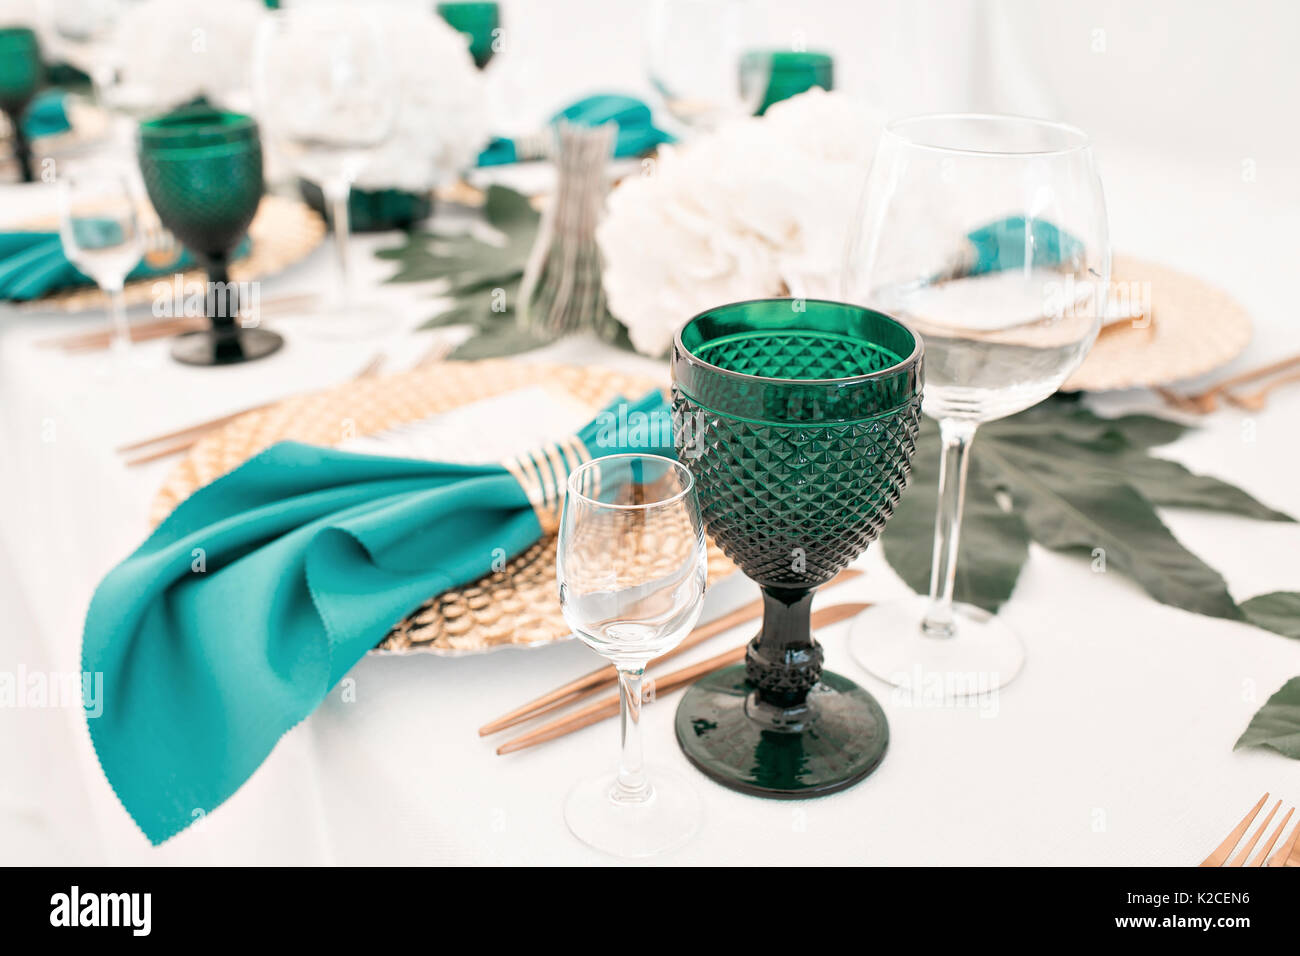 Beautifully organized event - served festive tables ready for guests - Stock Image